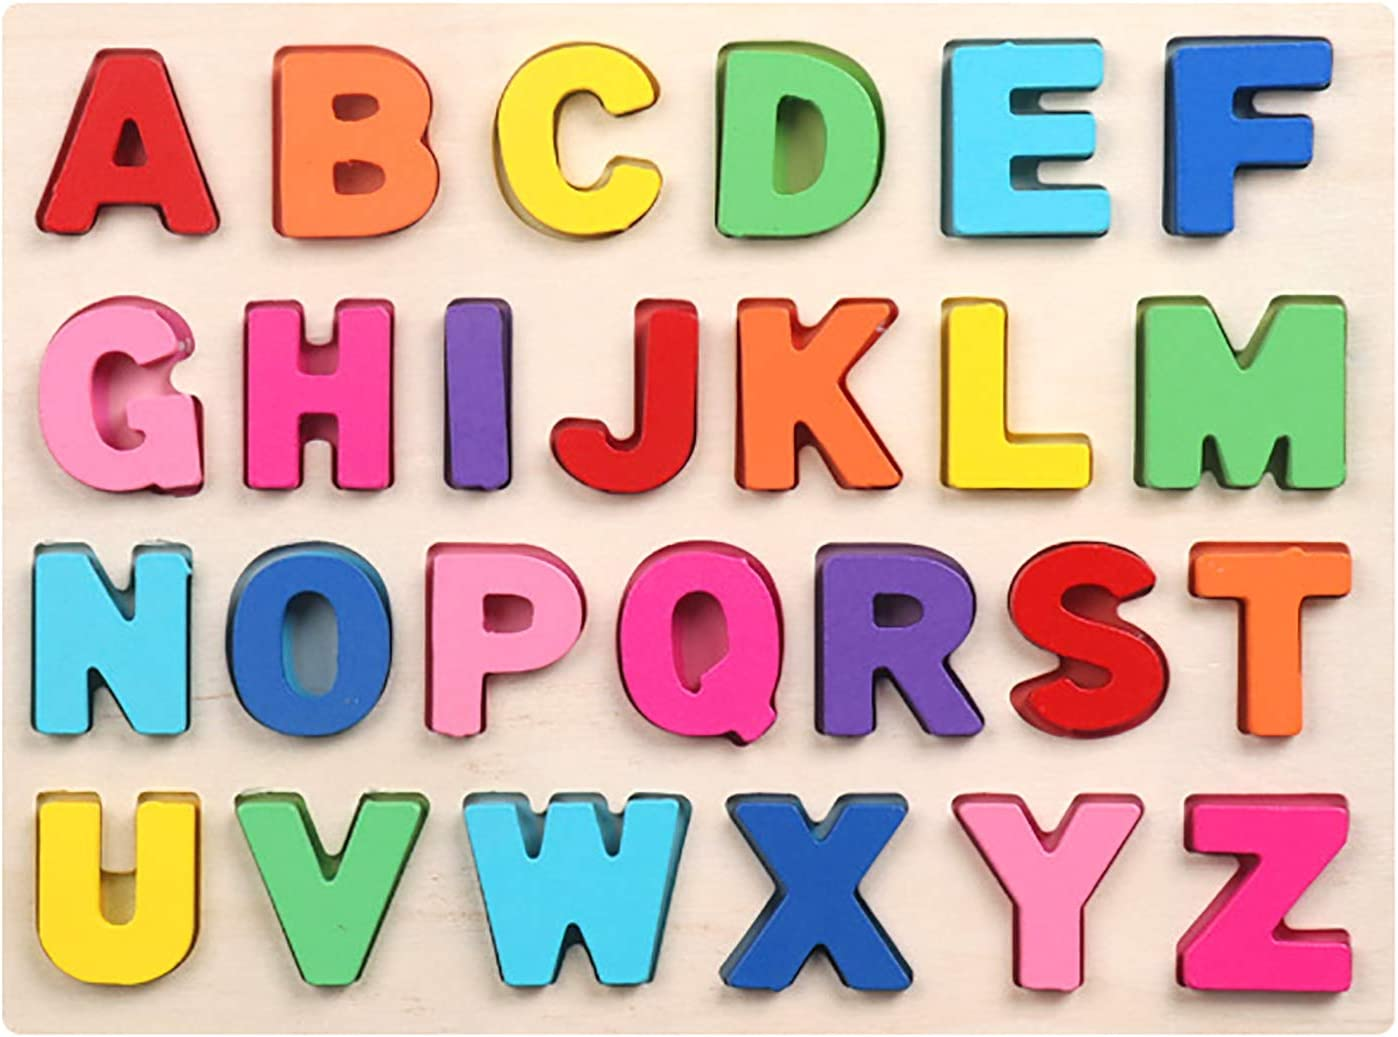 kekafu Wooden Max 49% OFF Alphabet Puzzles Puzzle Board ABC Don't miss the campaign